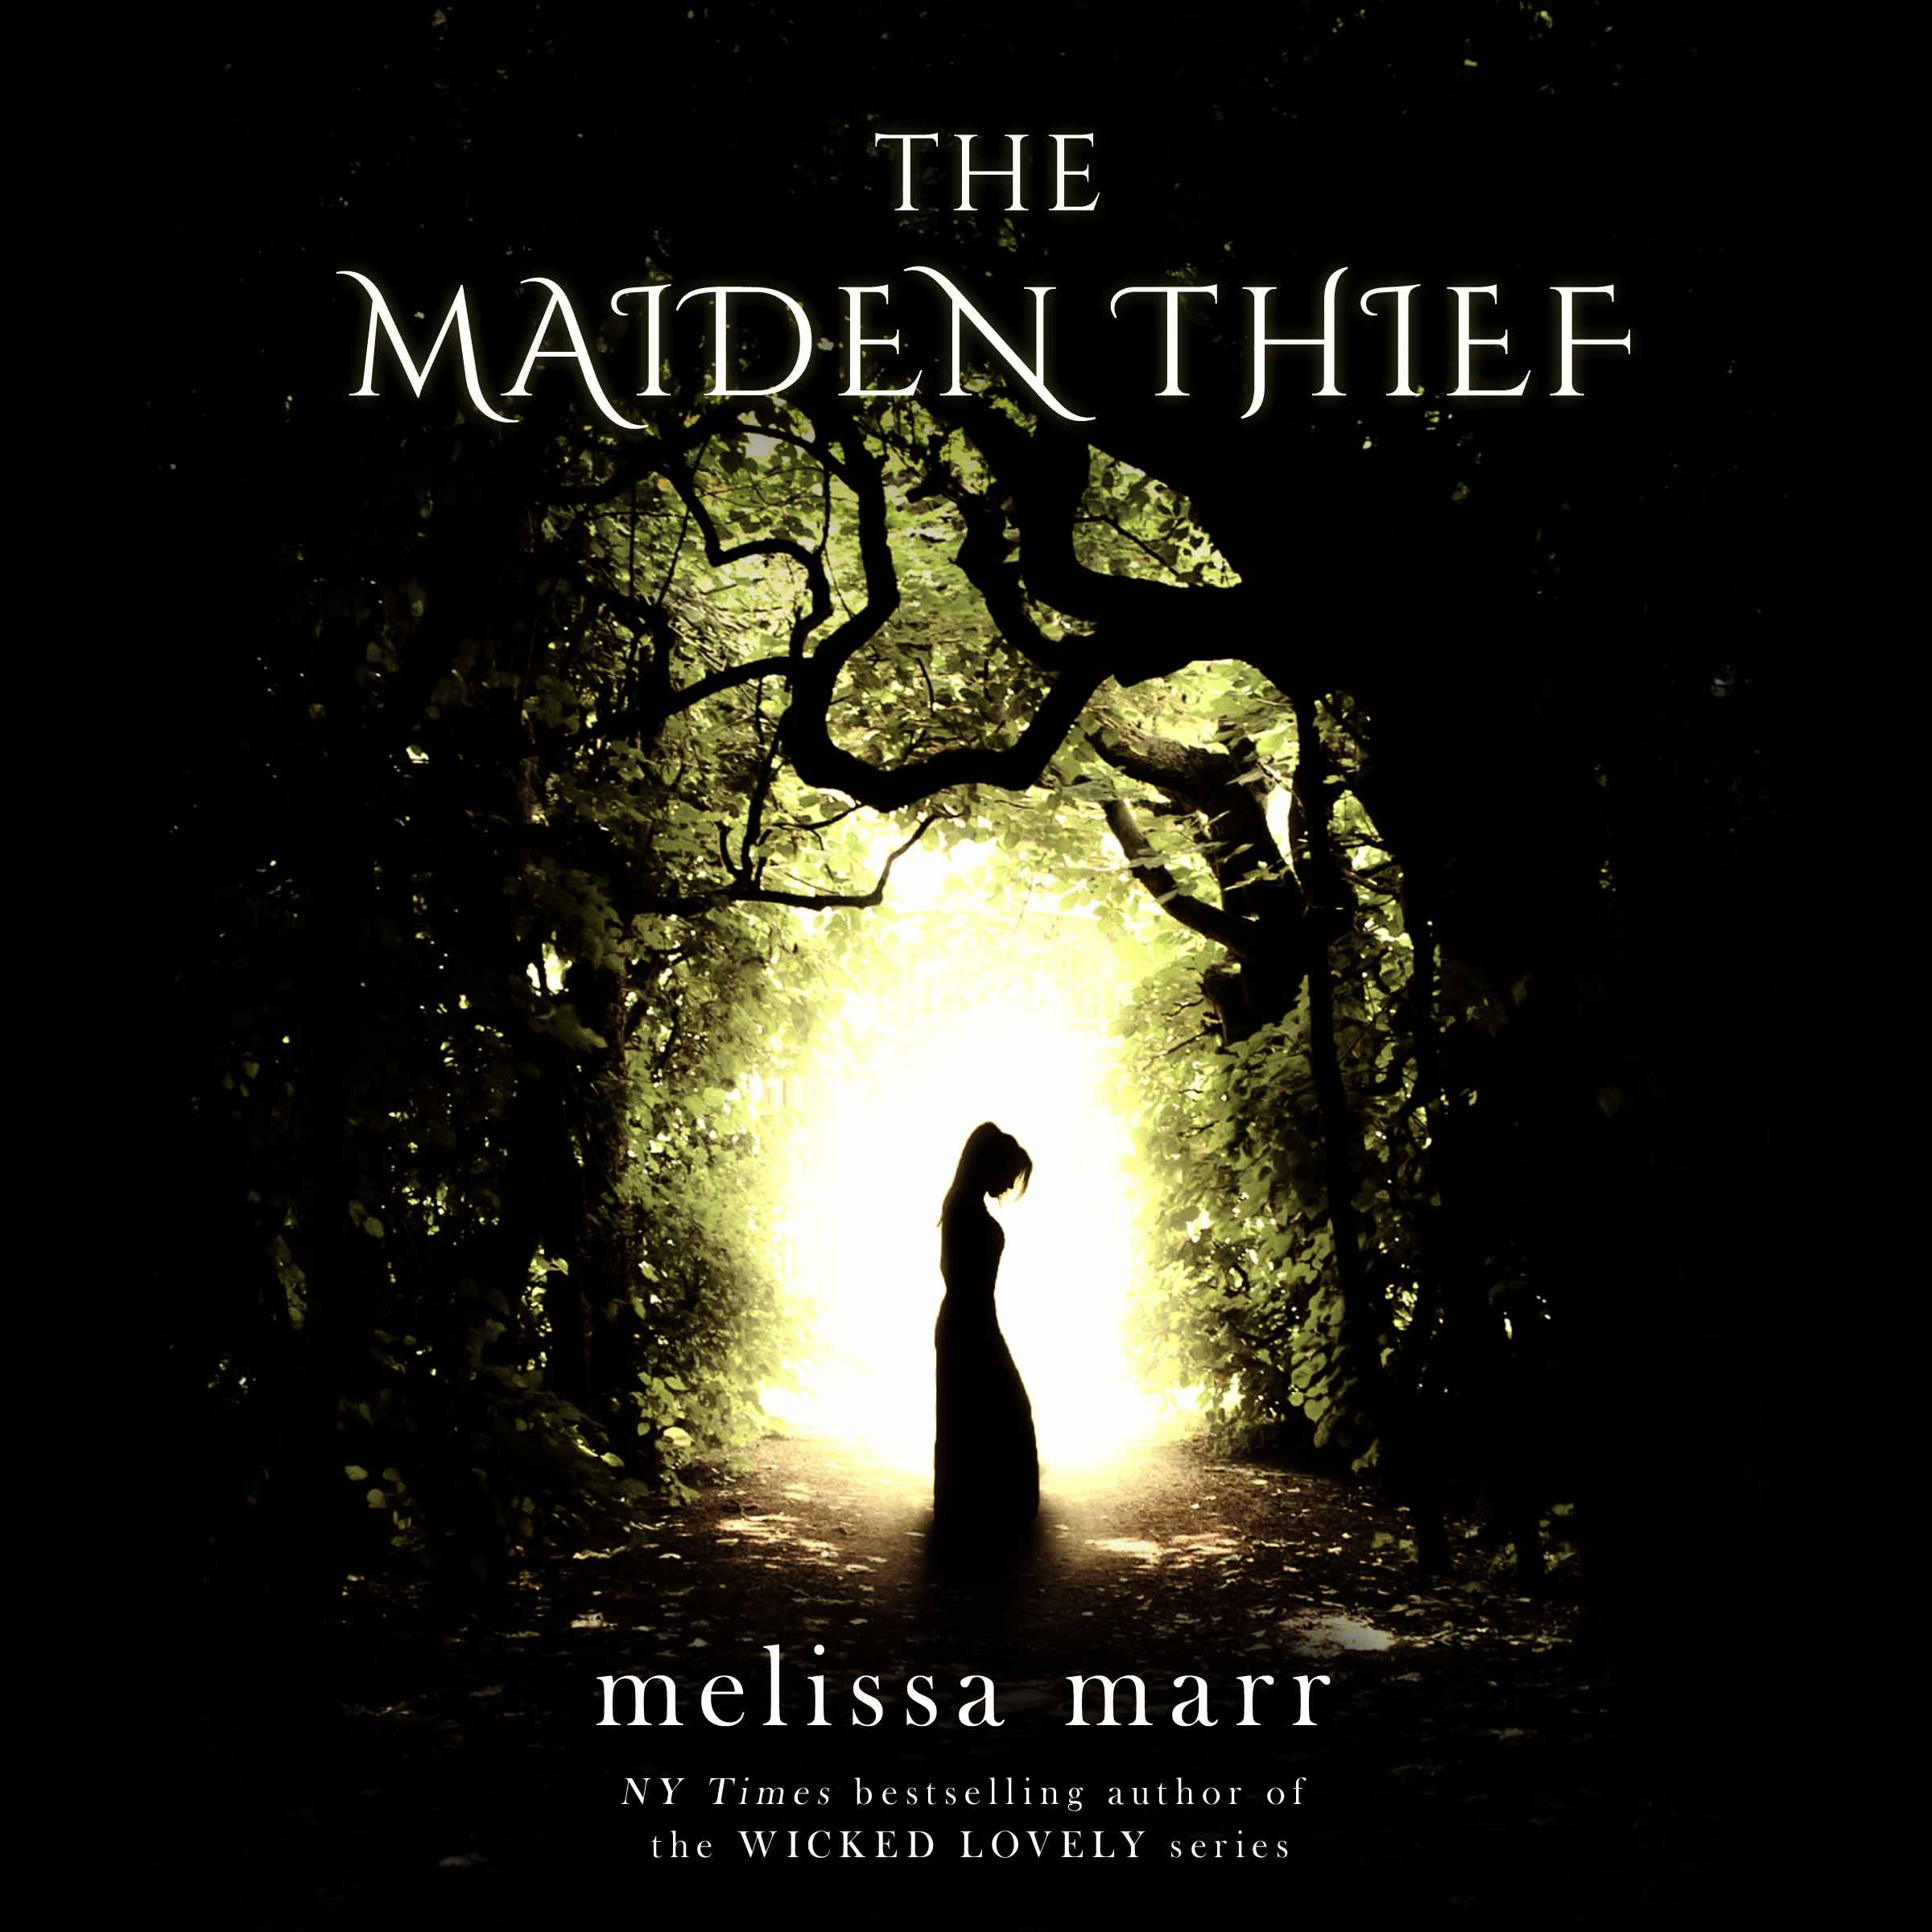 The-Maiden-Thief-audio-book-cover-low-res